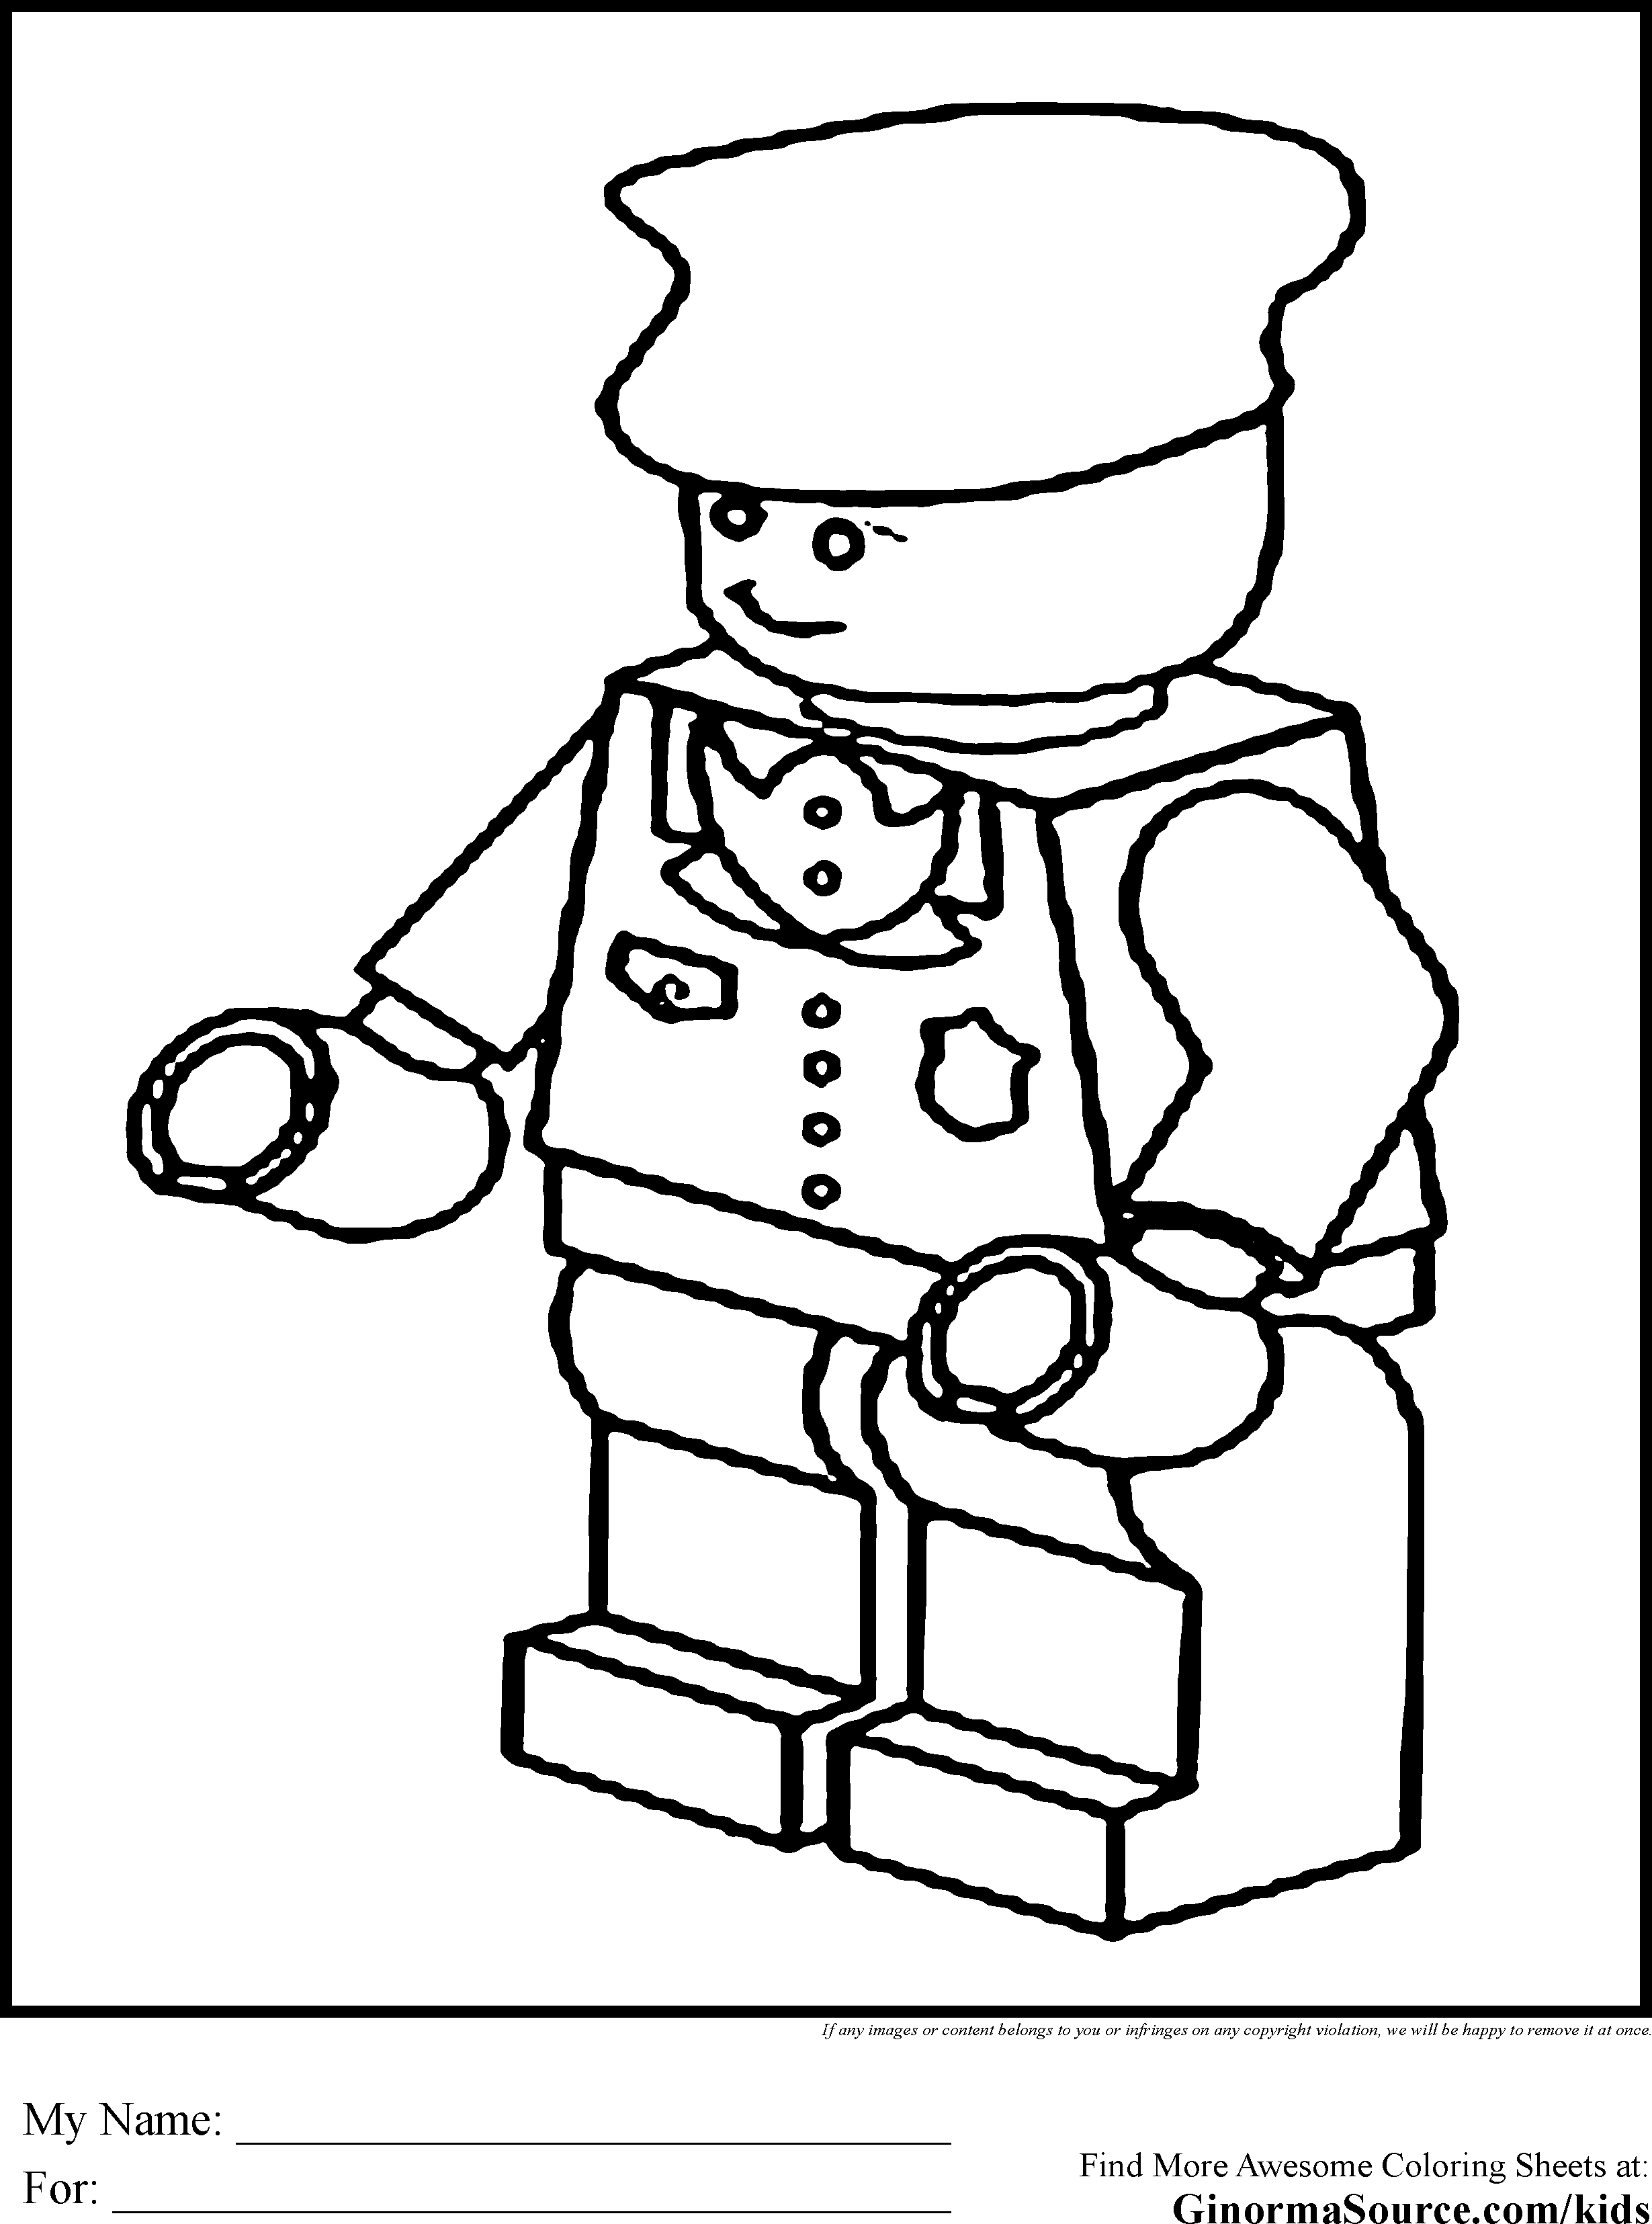 lego police officer coloring page lego police coloring pages color online free printable police officer coloring lego page